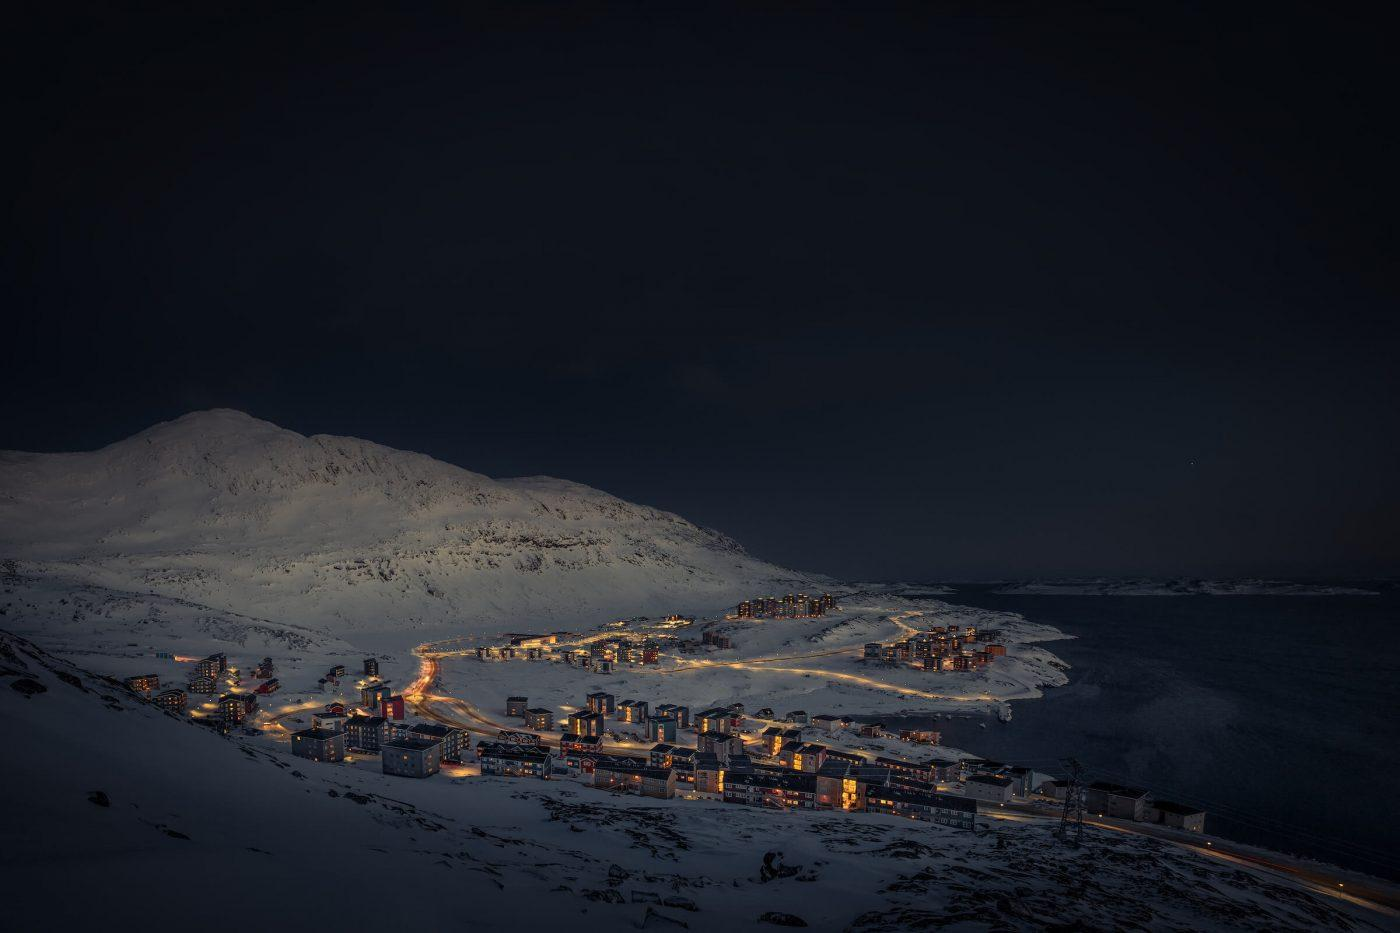 A winter evening view over the Nuuk suburb Qinngorput in Greenland. By Mads Pihl